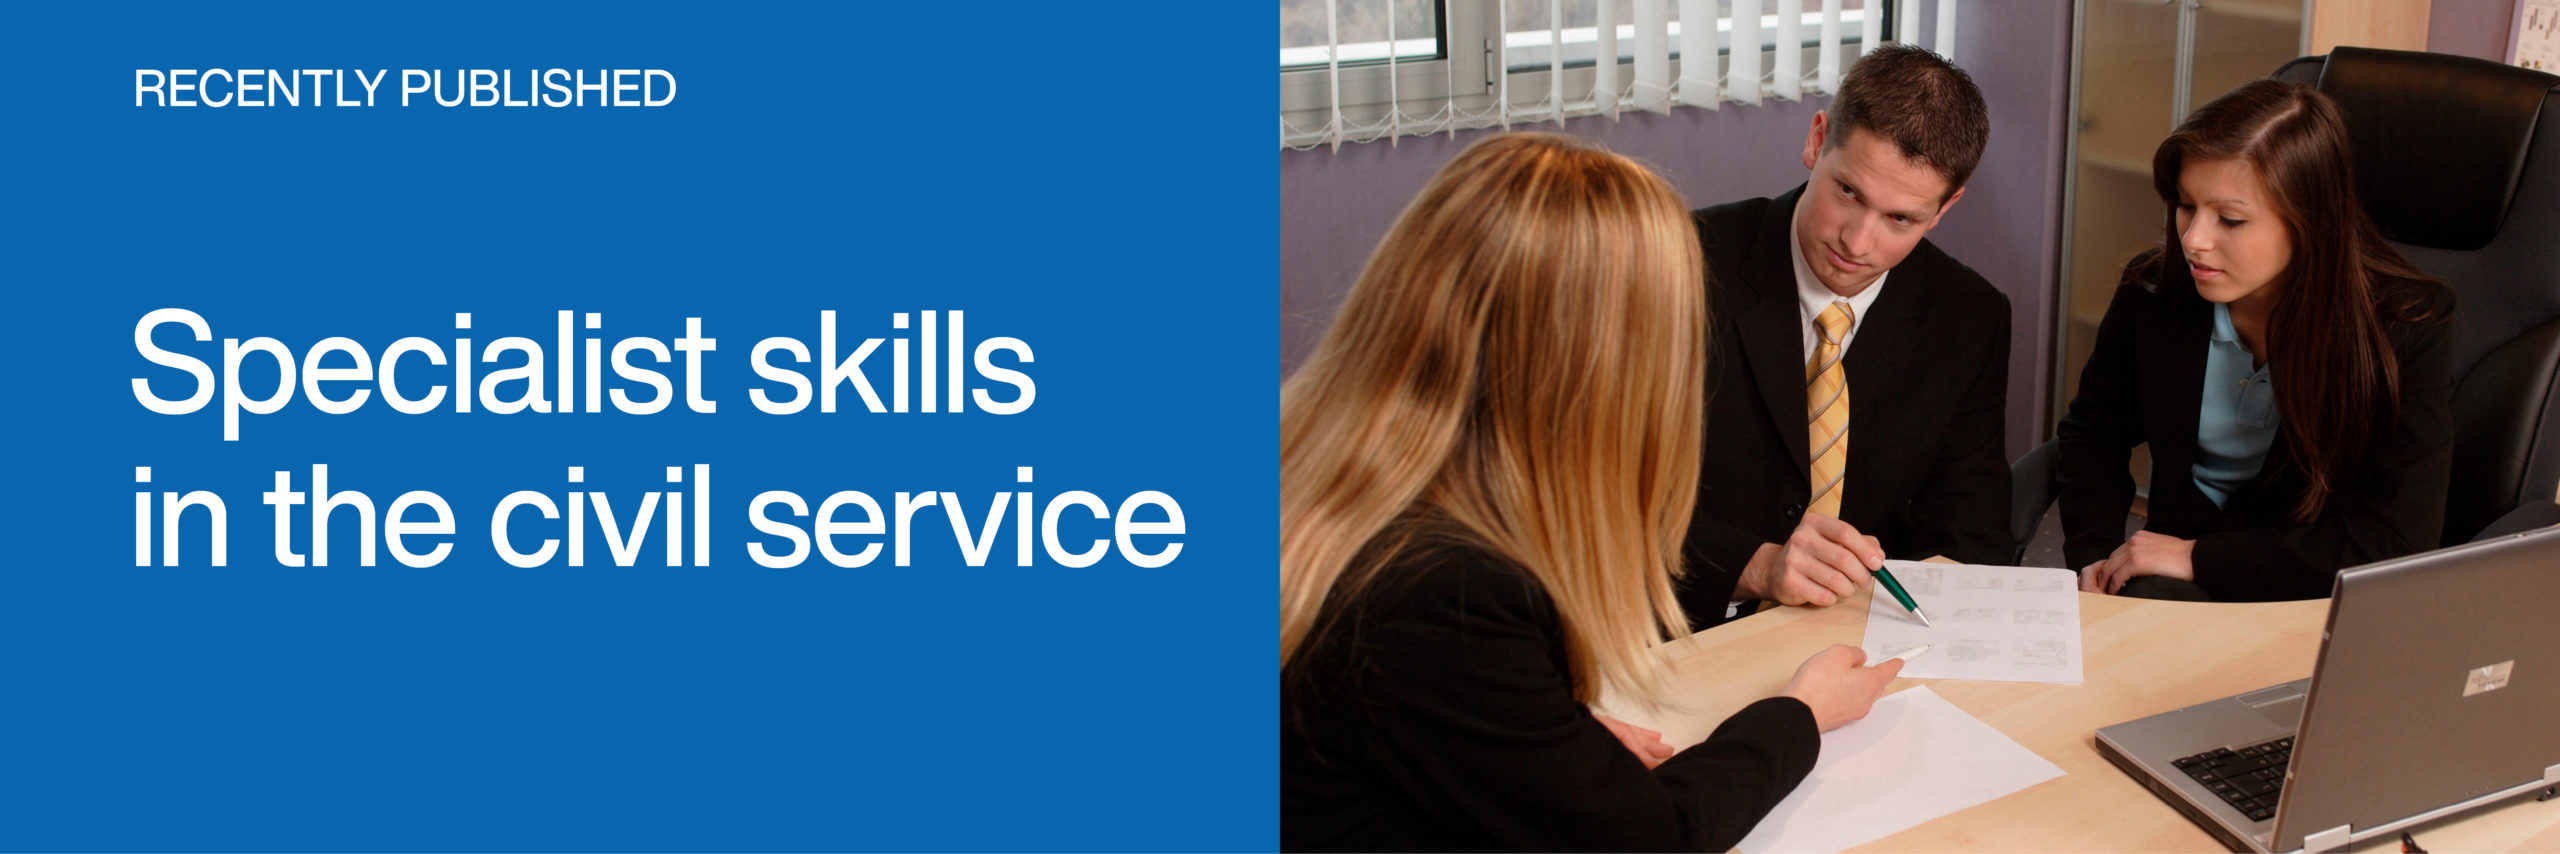 Recently published: Specialist skills in the civil service